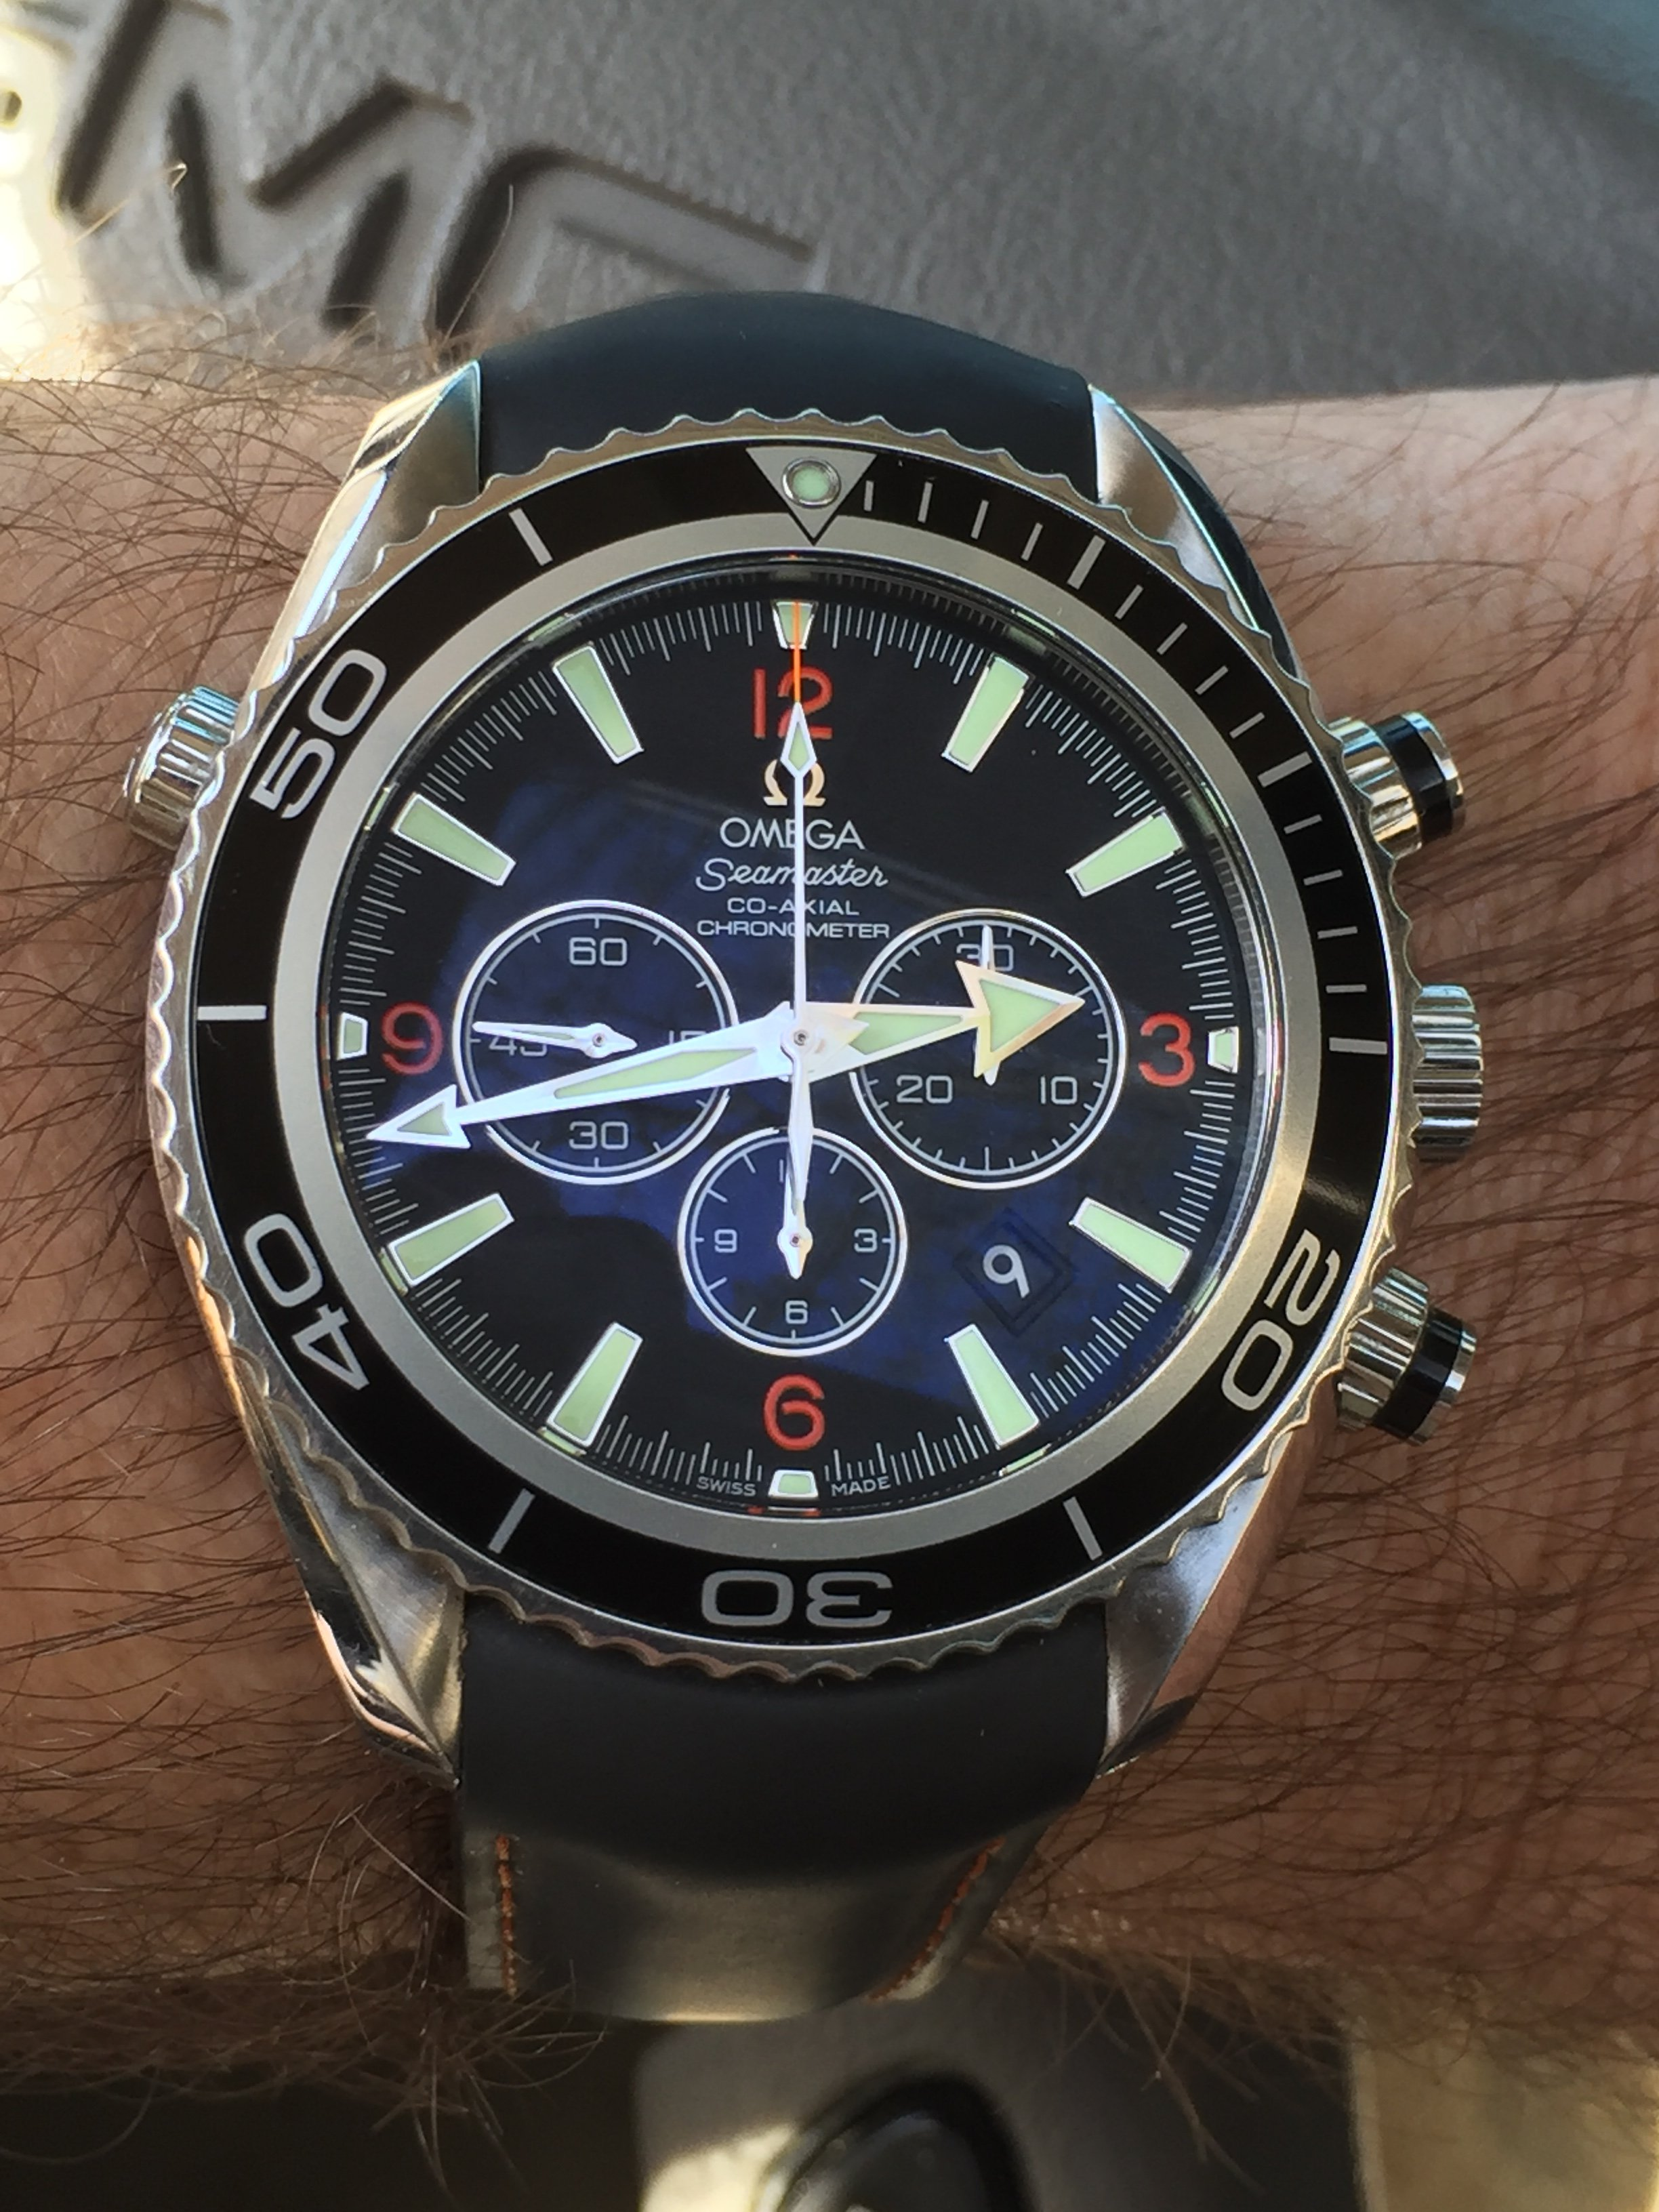 chronograph action certina iso ablogtowatch diver watches ds